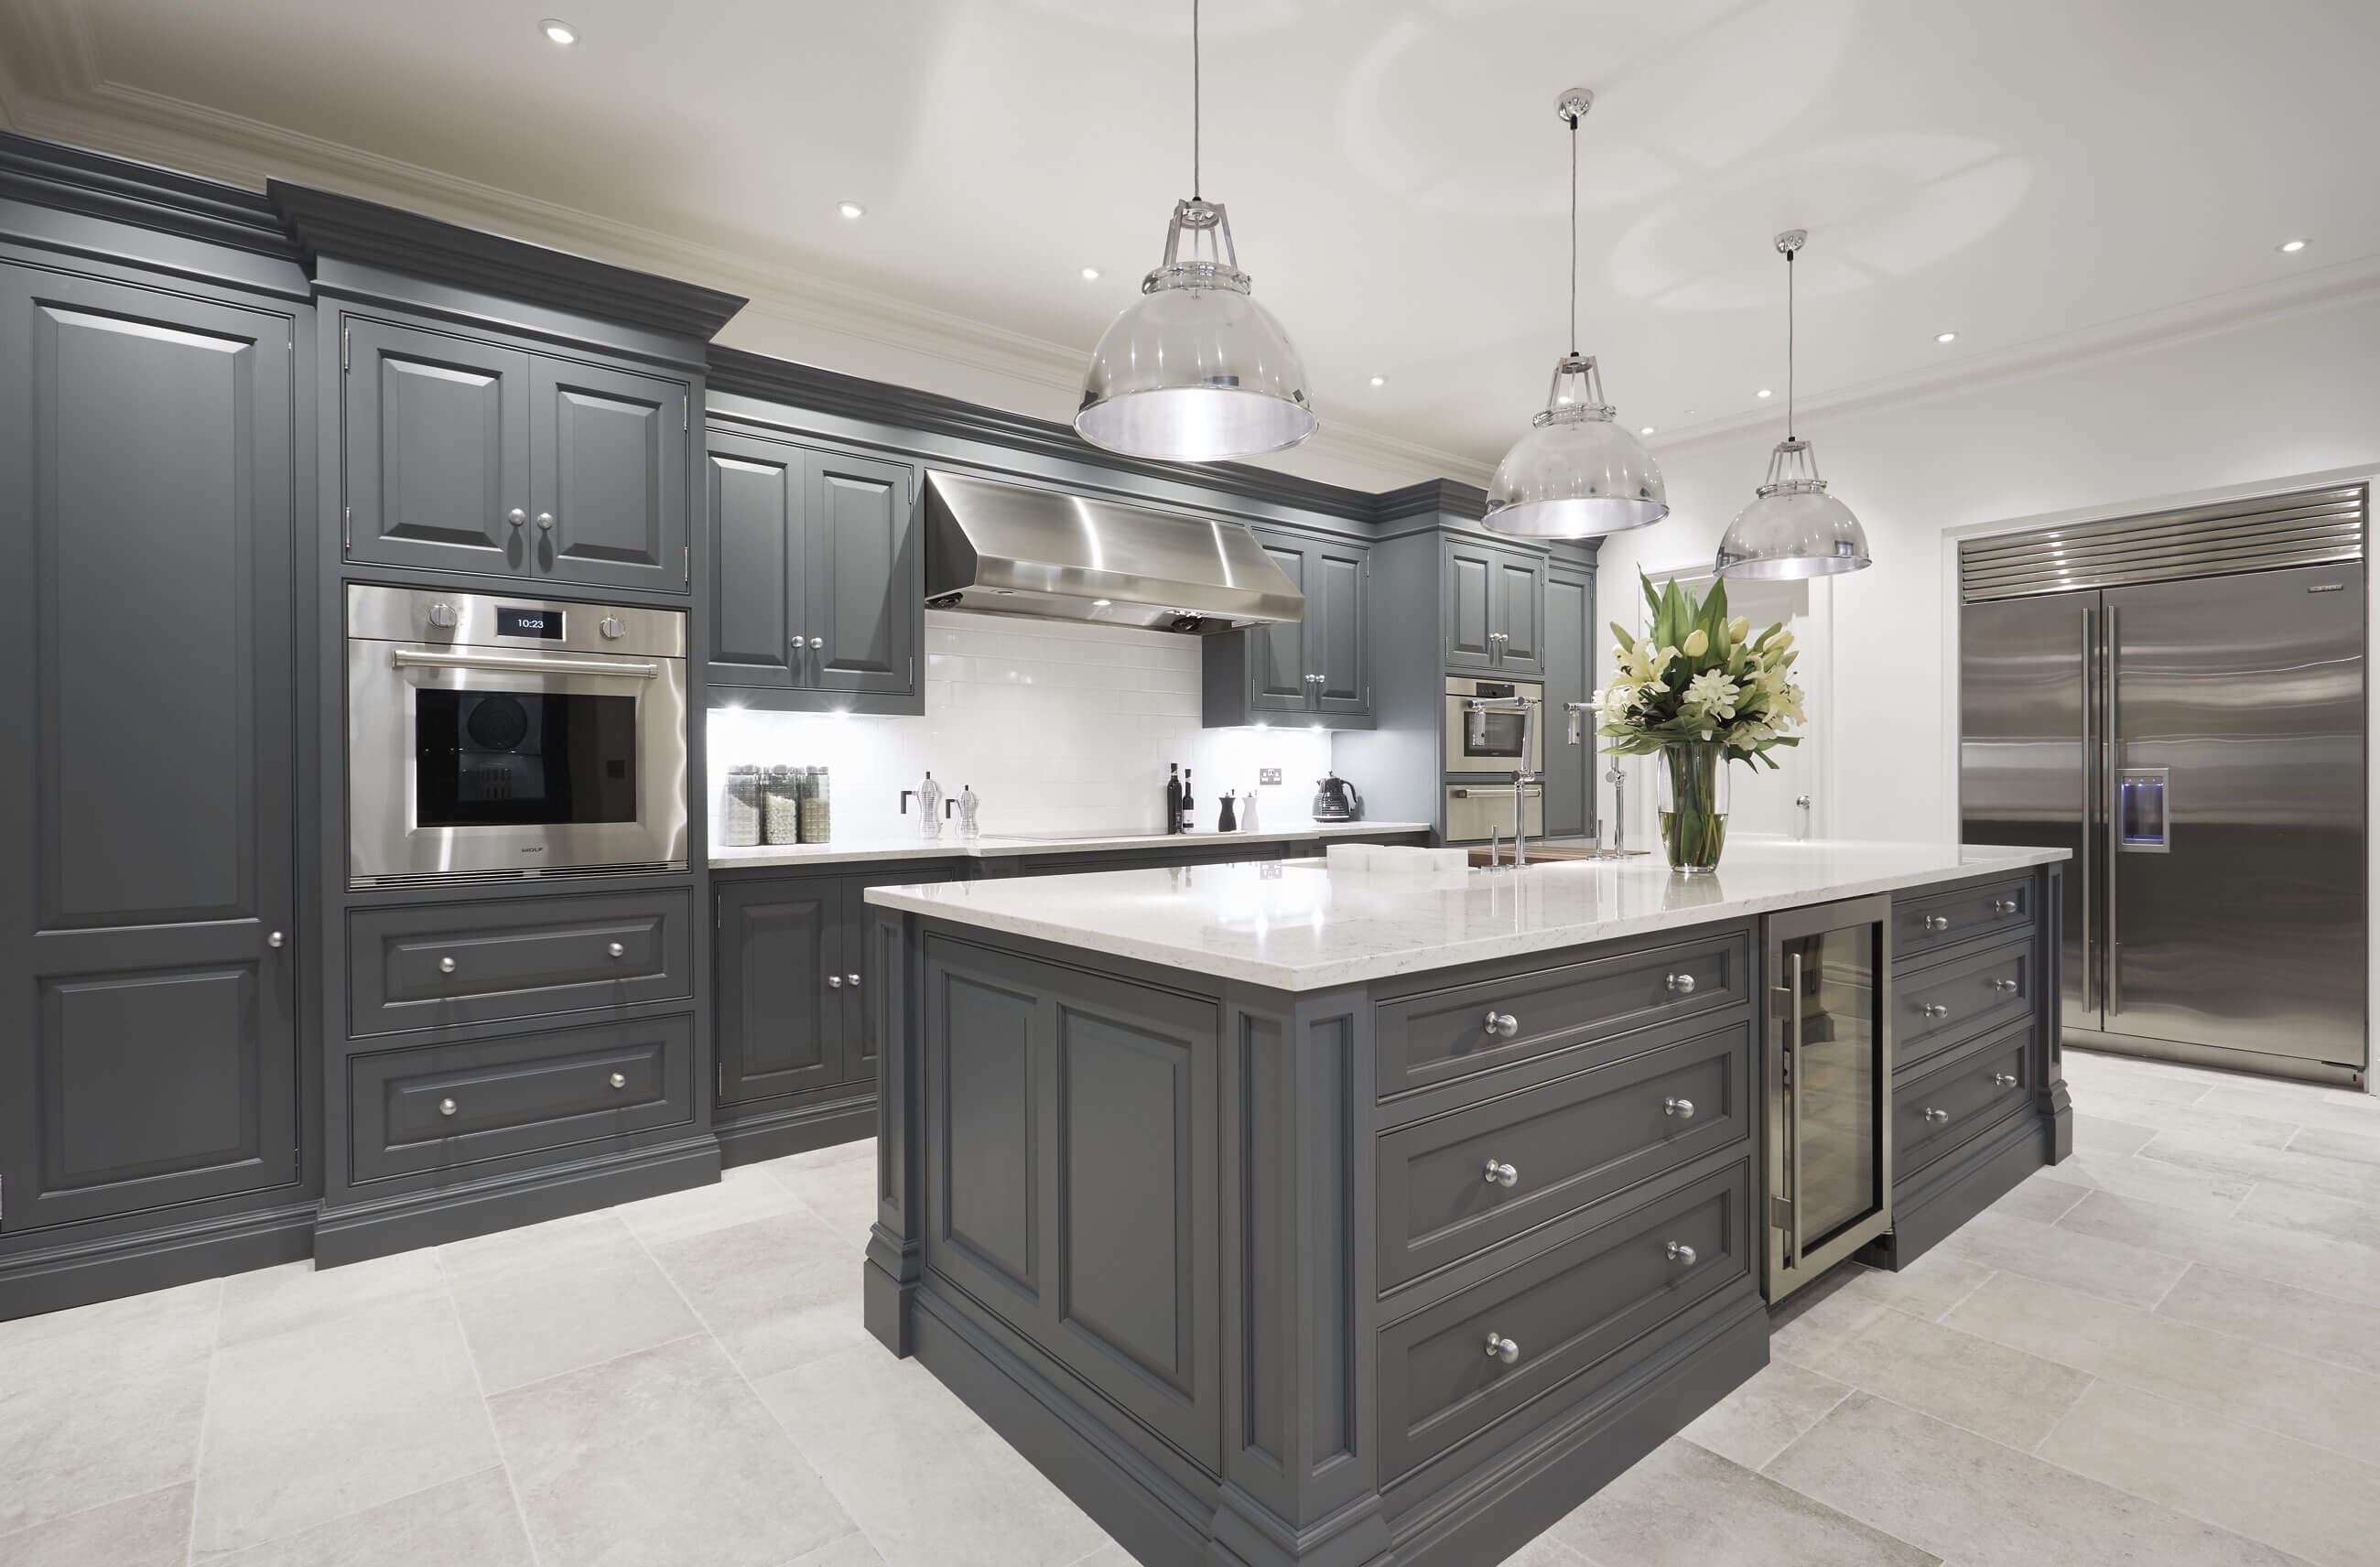 kitchen design grey luxury grey kitchen tom howley 438